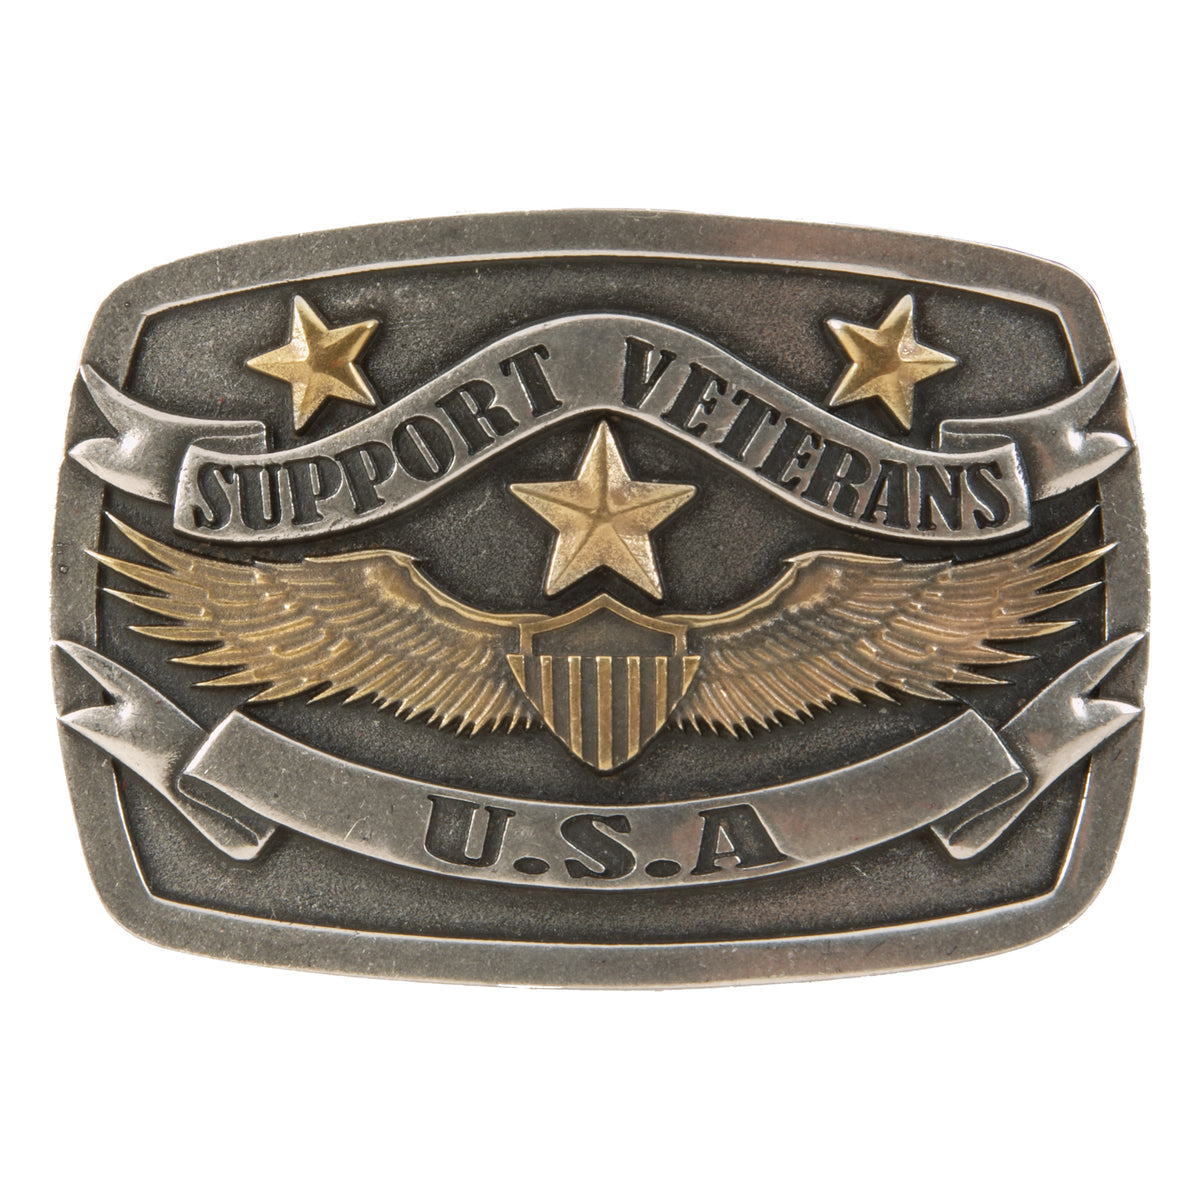 Support Veterans USA Buckle